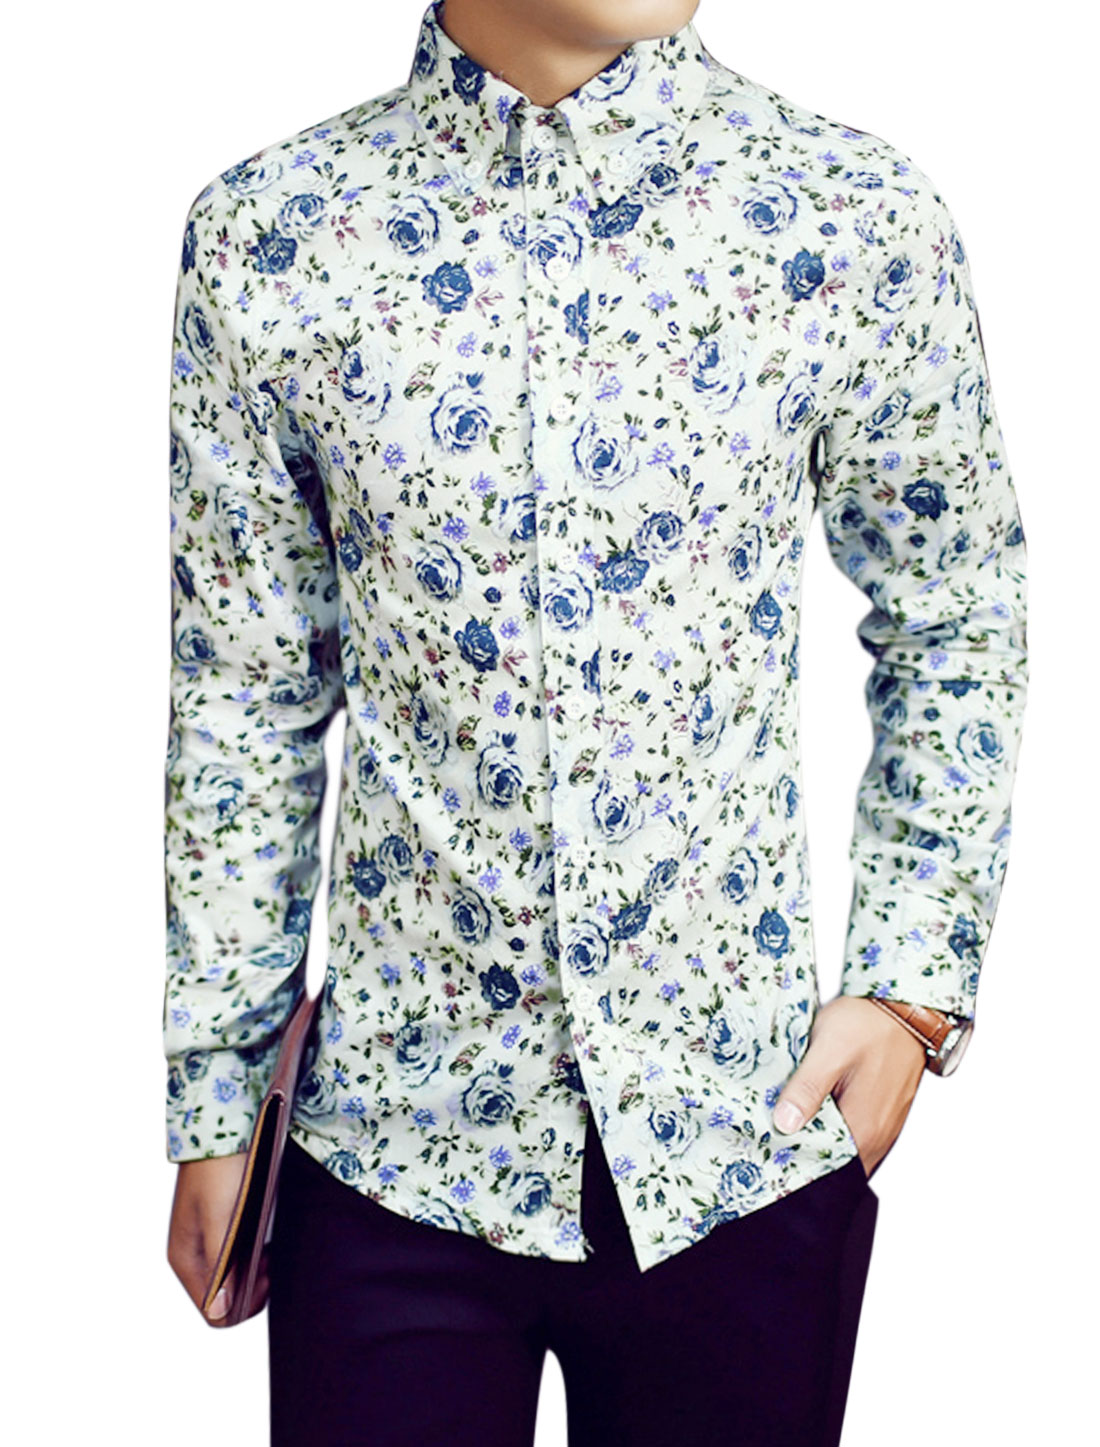 Men Leisure Long Sleeves Floral Prints Button Down Collared Shirts White S